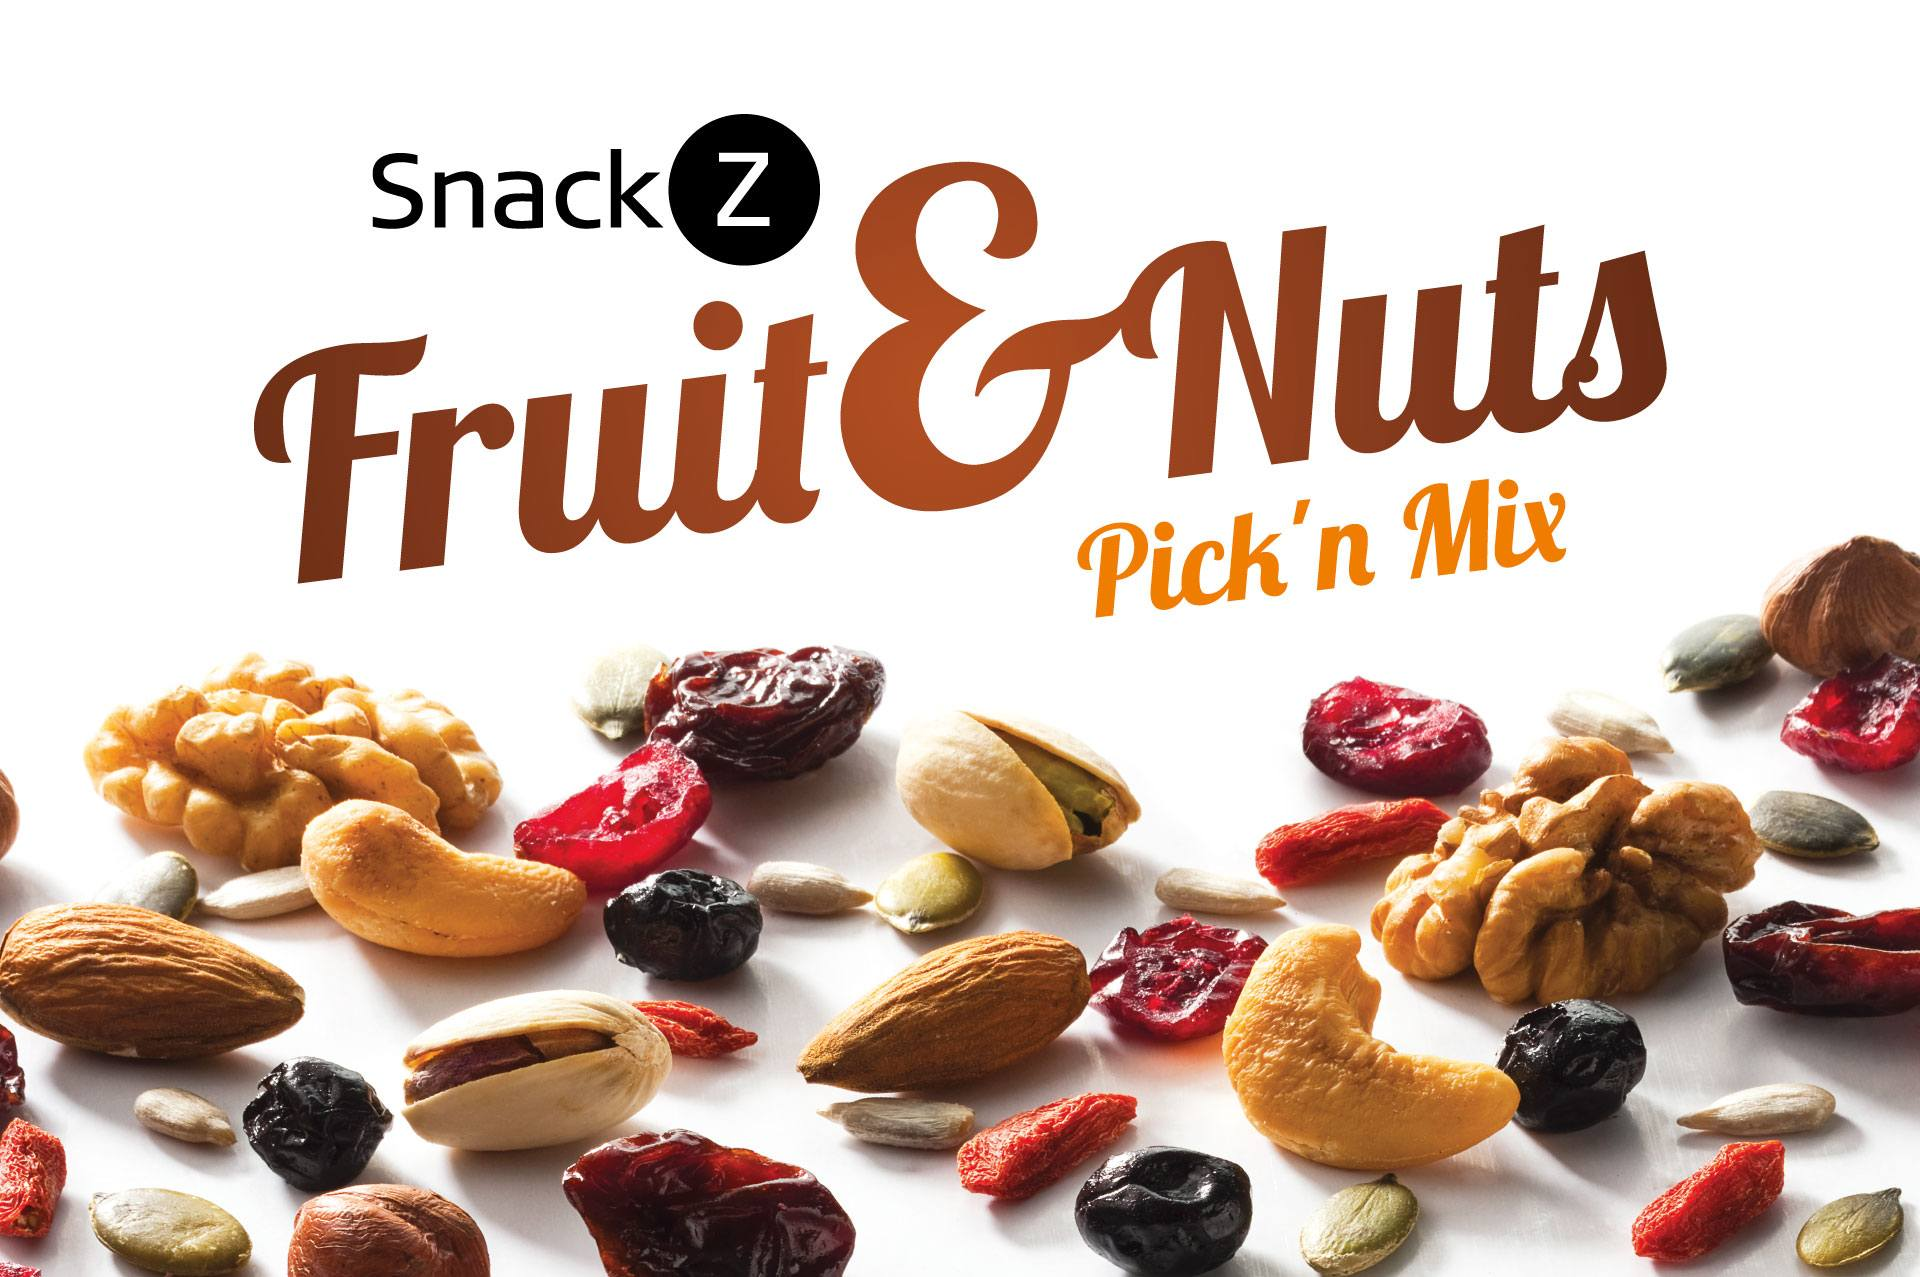 SnackZ Fruit & Nuts Pick 'n Mix